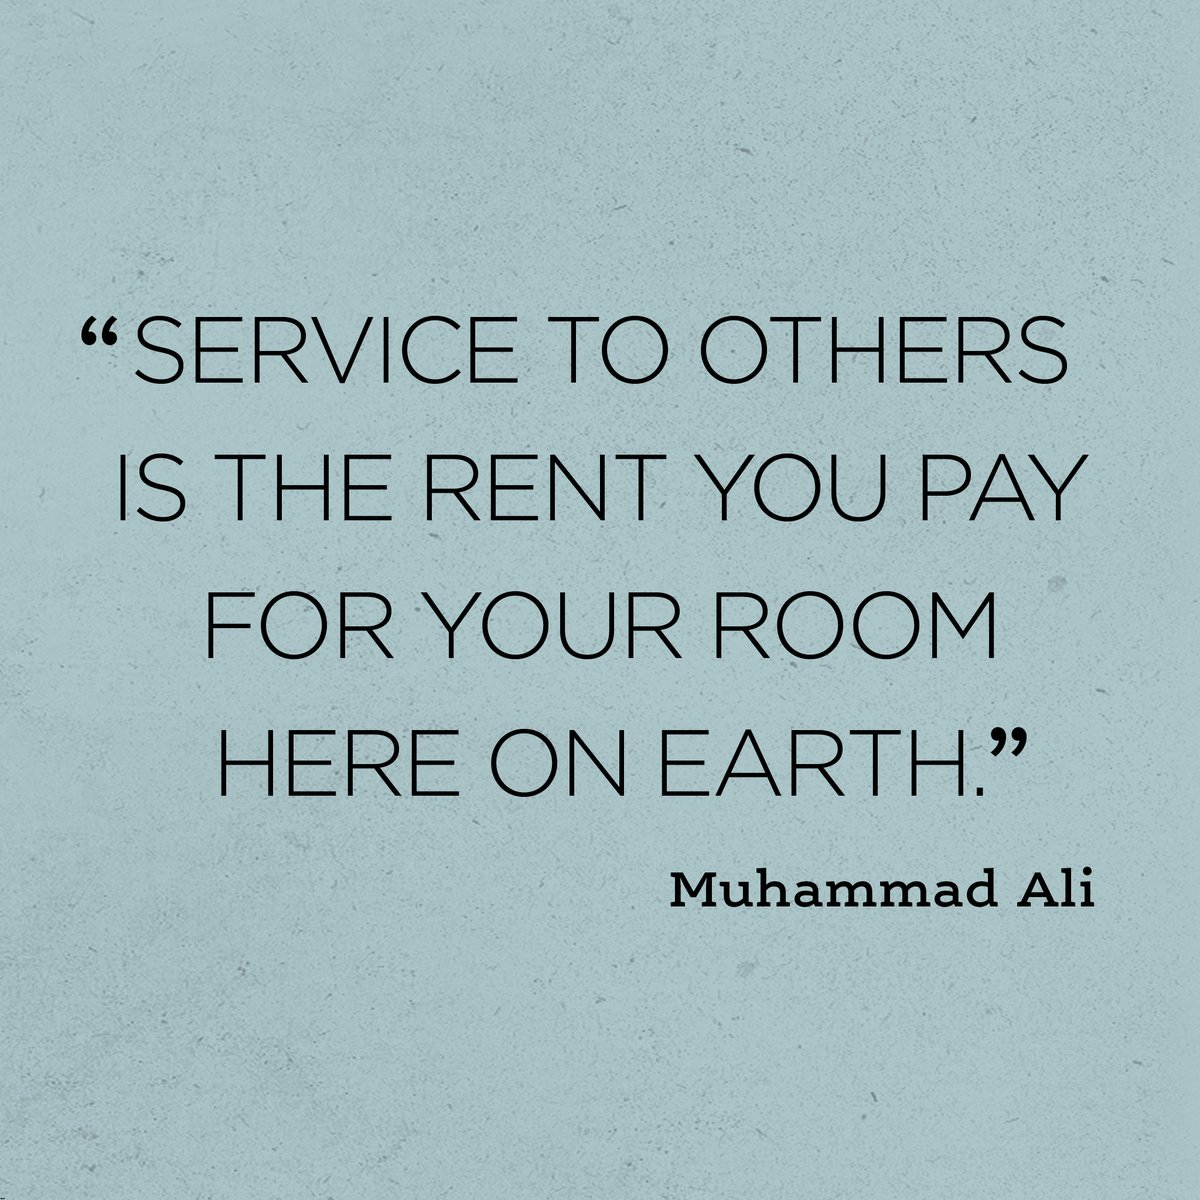 Muhammad Ali quote Service to others is the rent you pay for your room here on Earth.